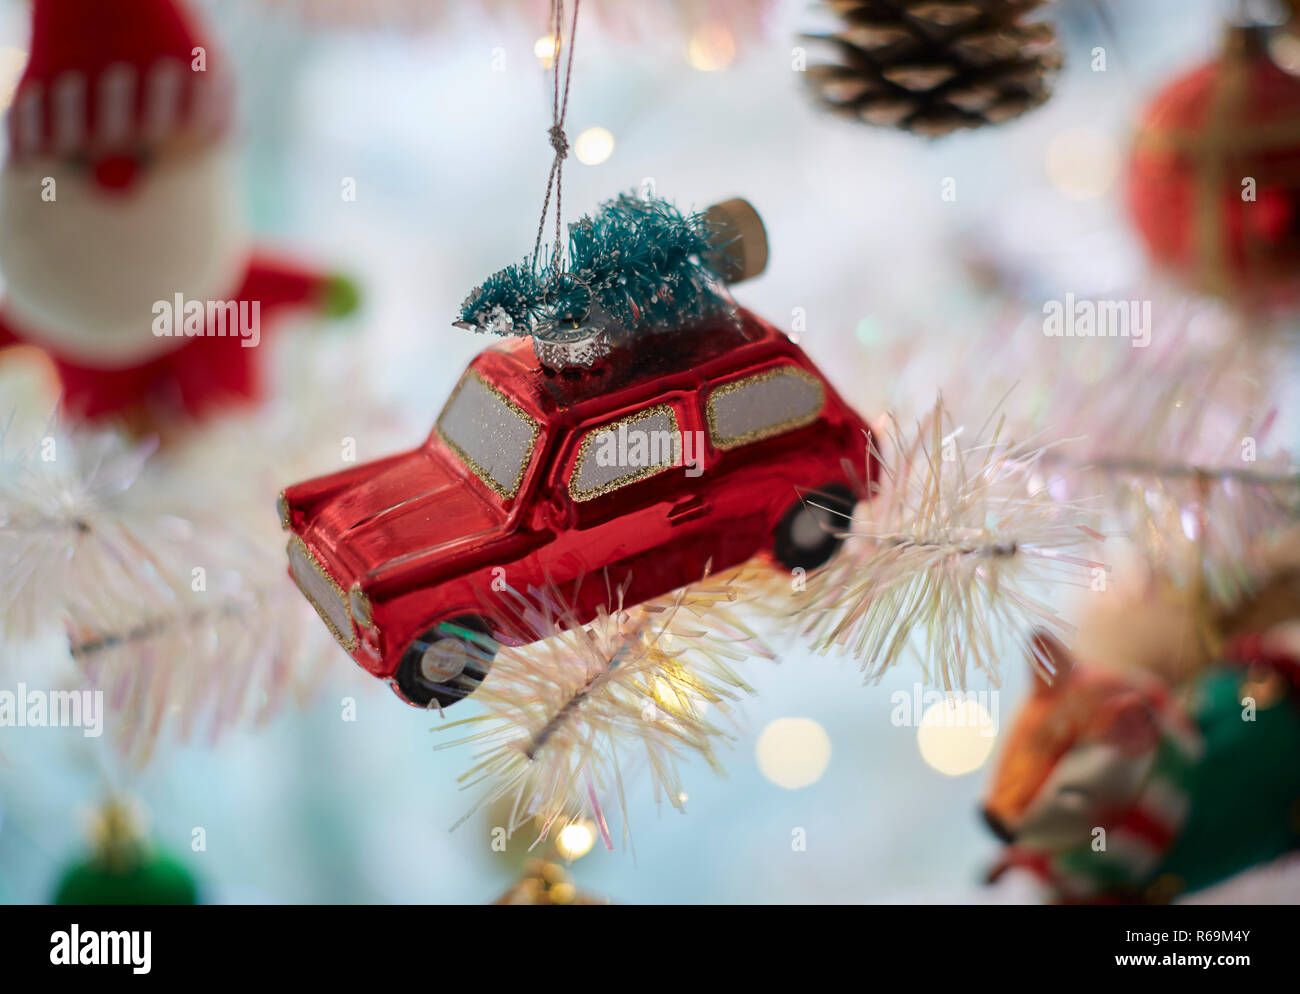 Christmas Car Decorations.Christmas Red Car Decorations With A Tree On Top In A White